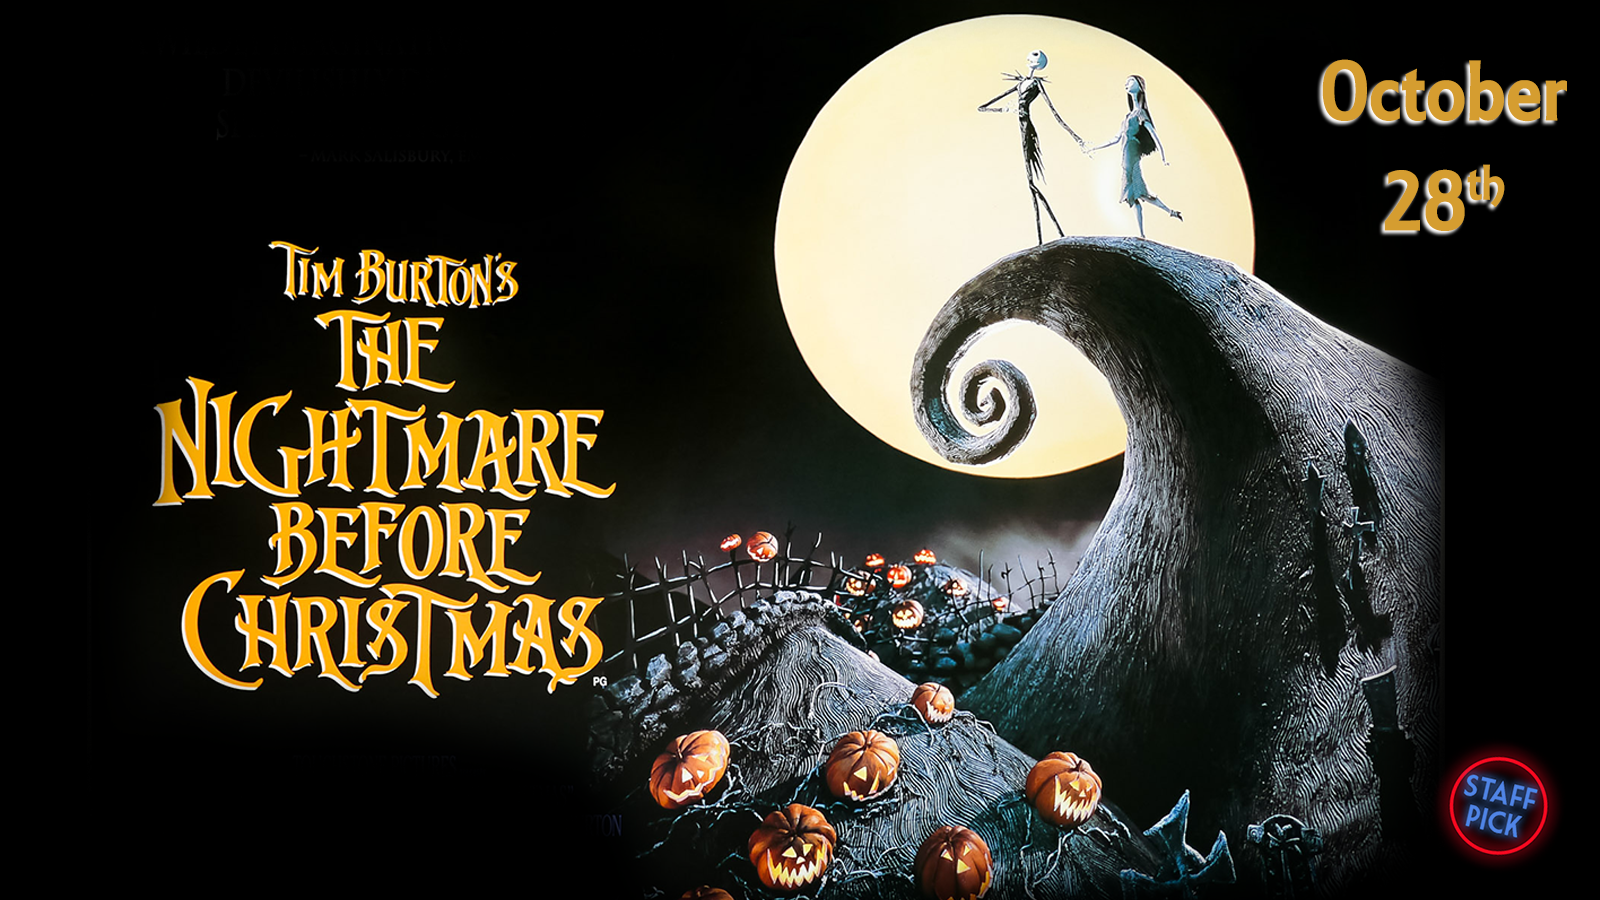 NightmareBeforeChristmas_Slide